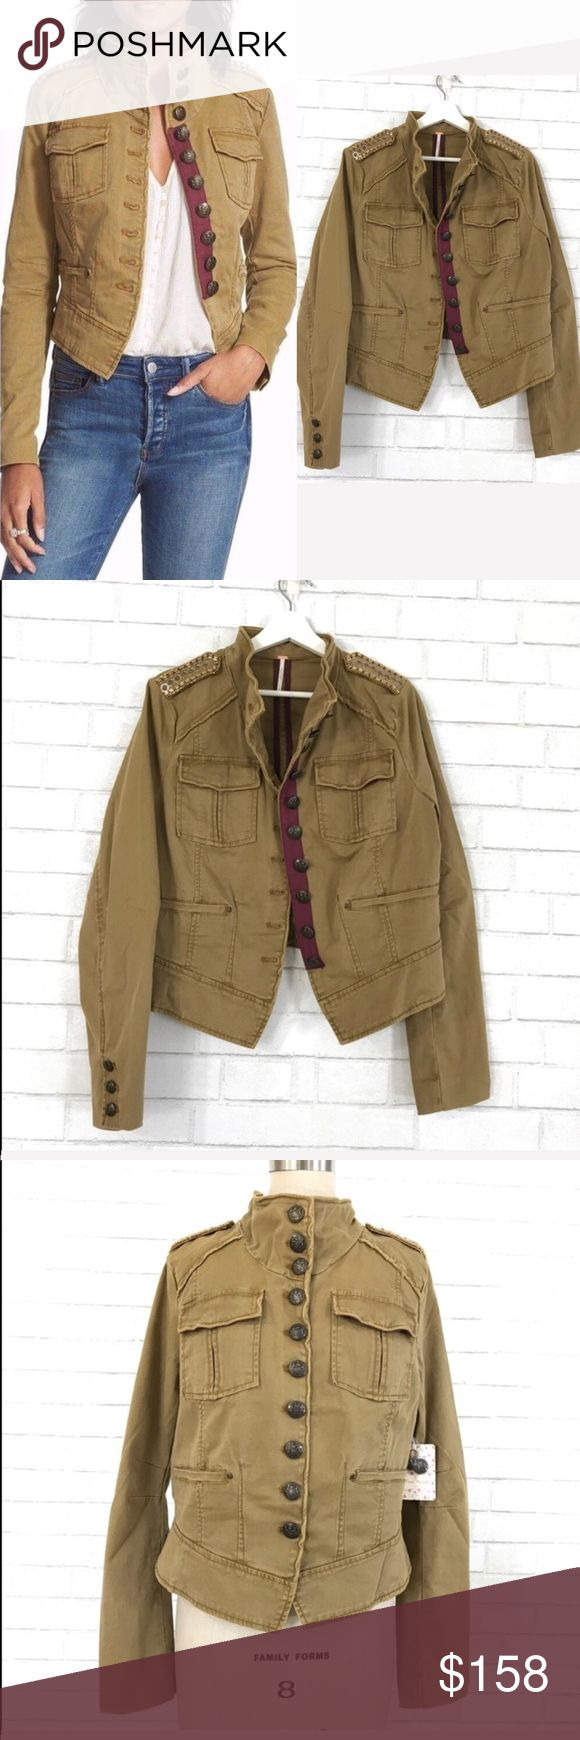 free people sand green Military Jacket size L New with tag A must have o military jacket in sand green.  Ⓜ️size L  Ⓜ️Chest 42 Ⓜ️waist 37 Ⓜ️Length 22 Ⓜ️Sleeves 26 Ⓜ️Shoulders 16.5  New with Tag, cotton spandex polyester blend, stand collar, button up, extra buttons included, 2 flap button pockets at Chest, bedded detail shoulder.   ✅Bundle and save  ✅🚭 🚫No Trading 🙅🏻 Poshmark rules only‼️ 📮price negotiation via offer only please♥️ Free People Jackets & Coats